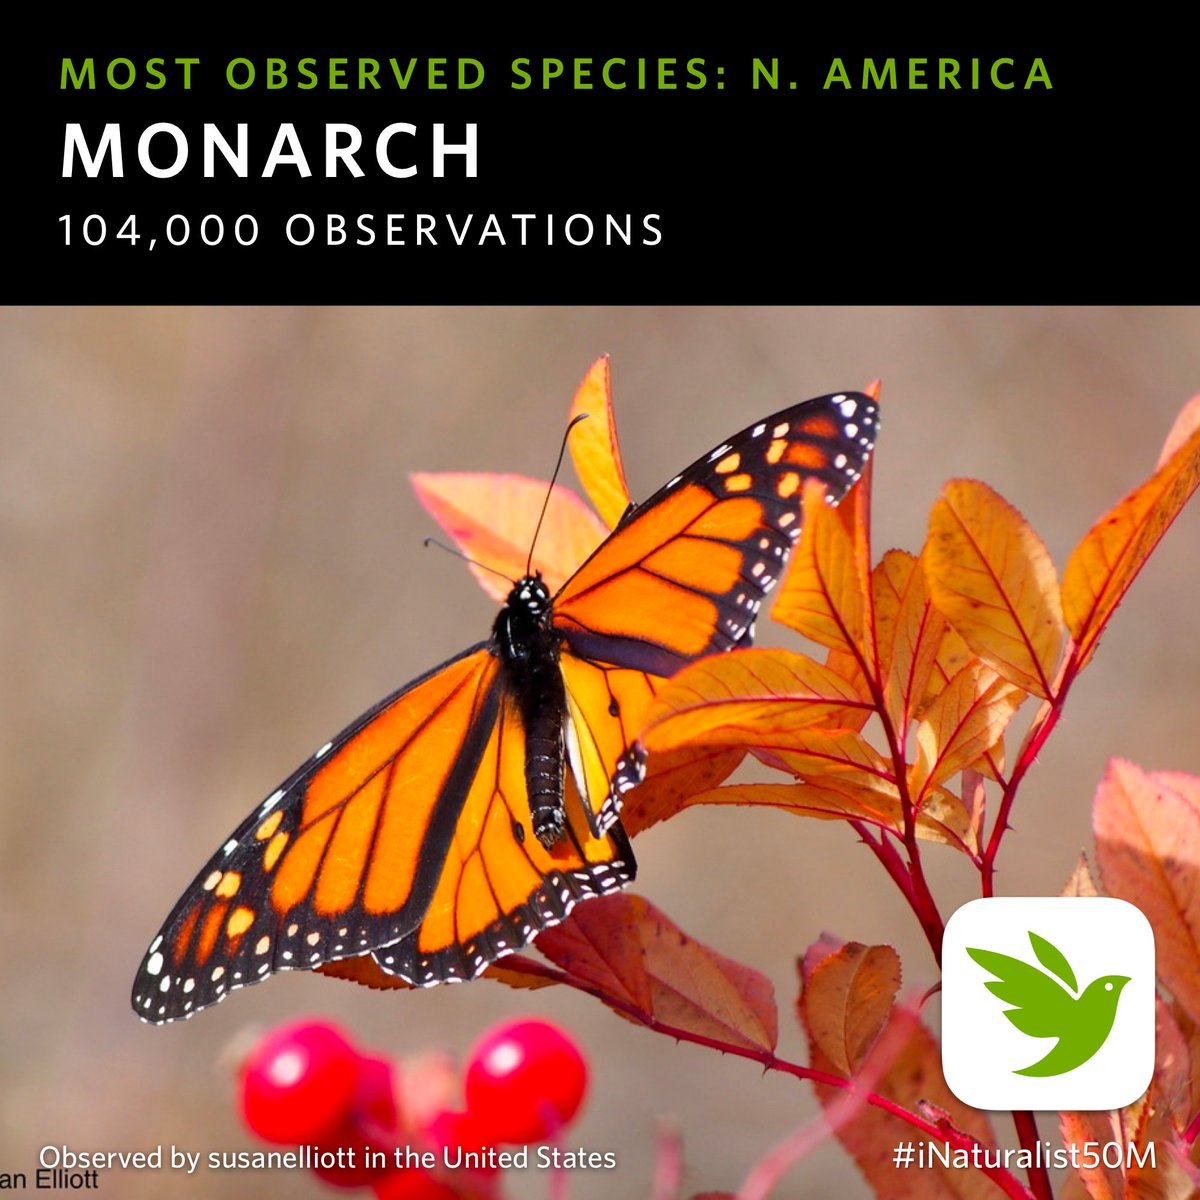 The most-observed species in North America is the #MonarchButterfly. This #Monarch was seen by susanelliott in Vermont, USA, a state that had early, widespread adoption of iNat. #iNaturalist50M Details: https://t.co/gBc8D6OOfb #citizenScience #communityScience #OpenData https://t.co/xHdZDbJIIk